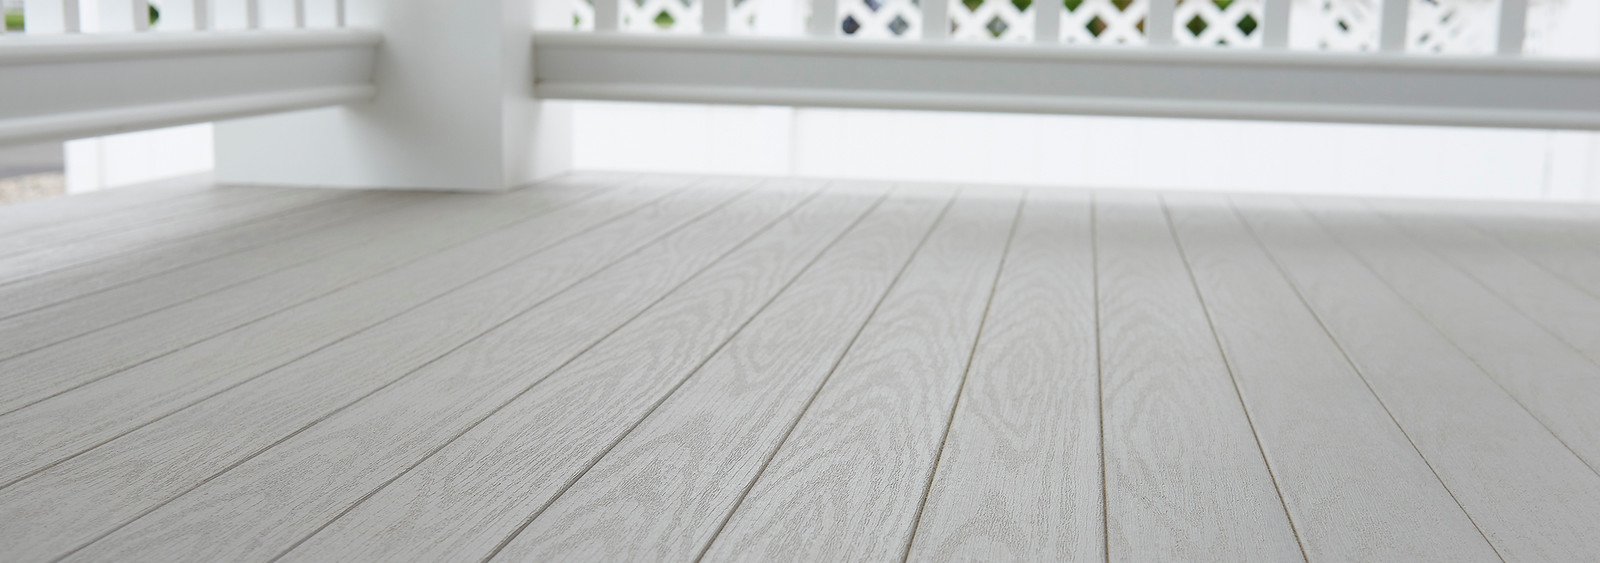 Serenity Porch Flooring In Grey Pewter